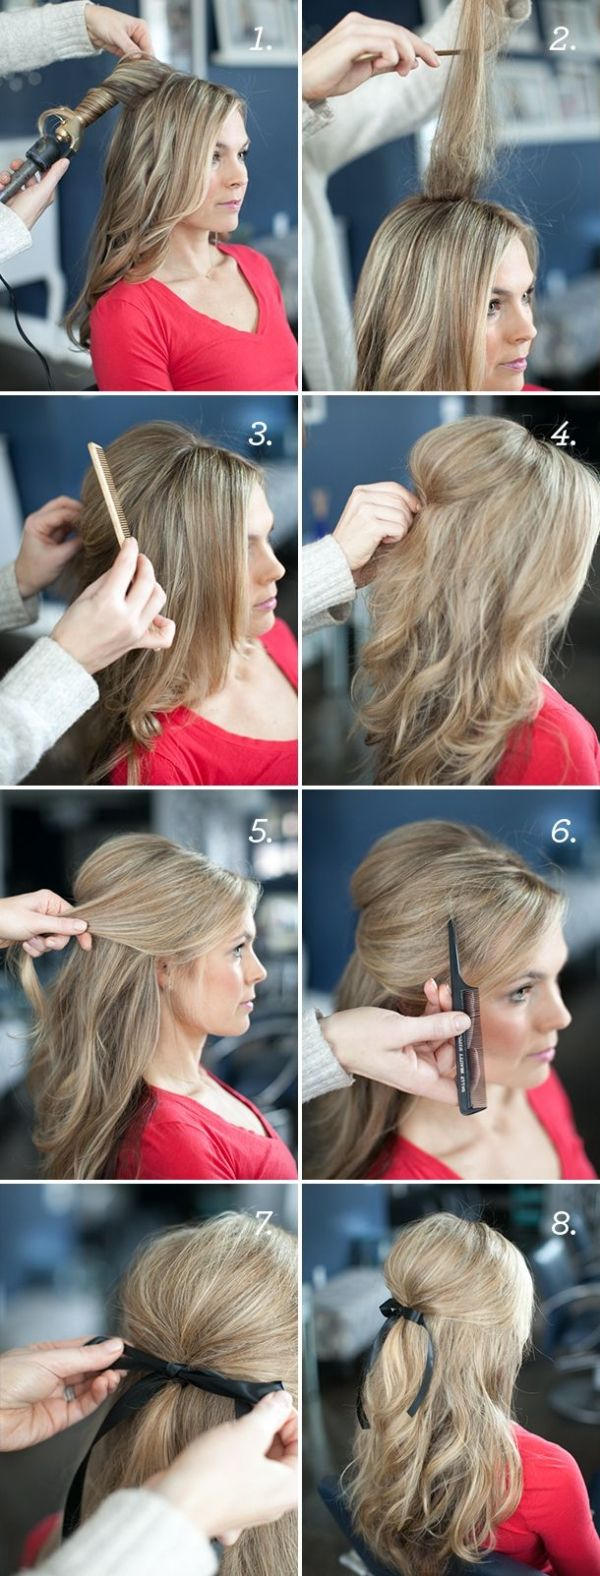 Ribbon Half Updo Tutorial by Martha Lynn Kale | photo by Kate Stafford for Camille Styles by lupita m